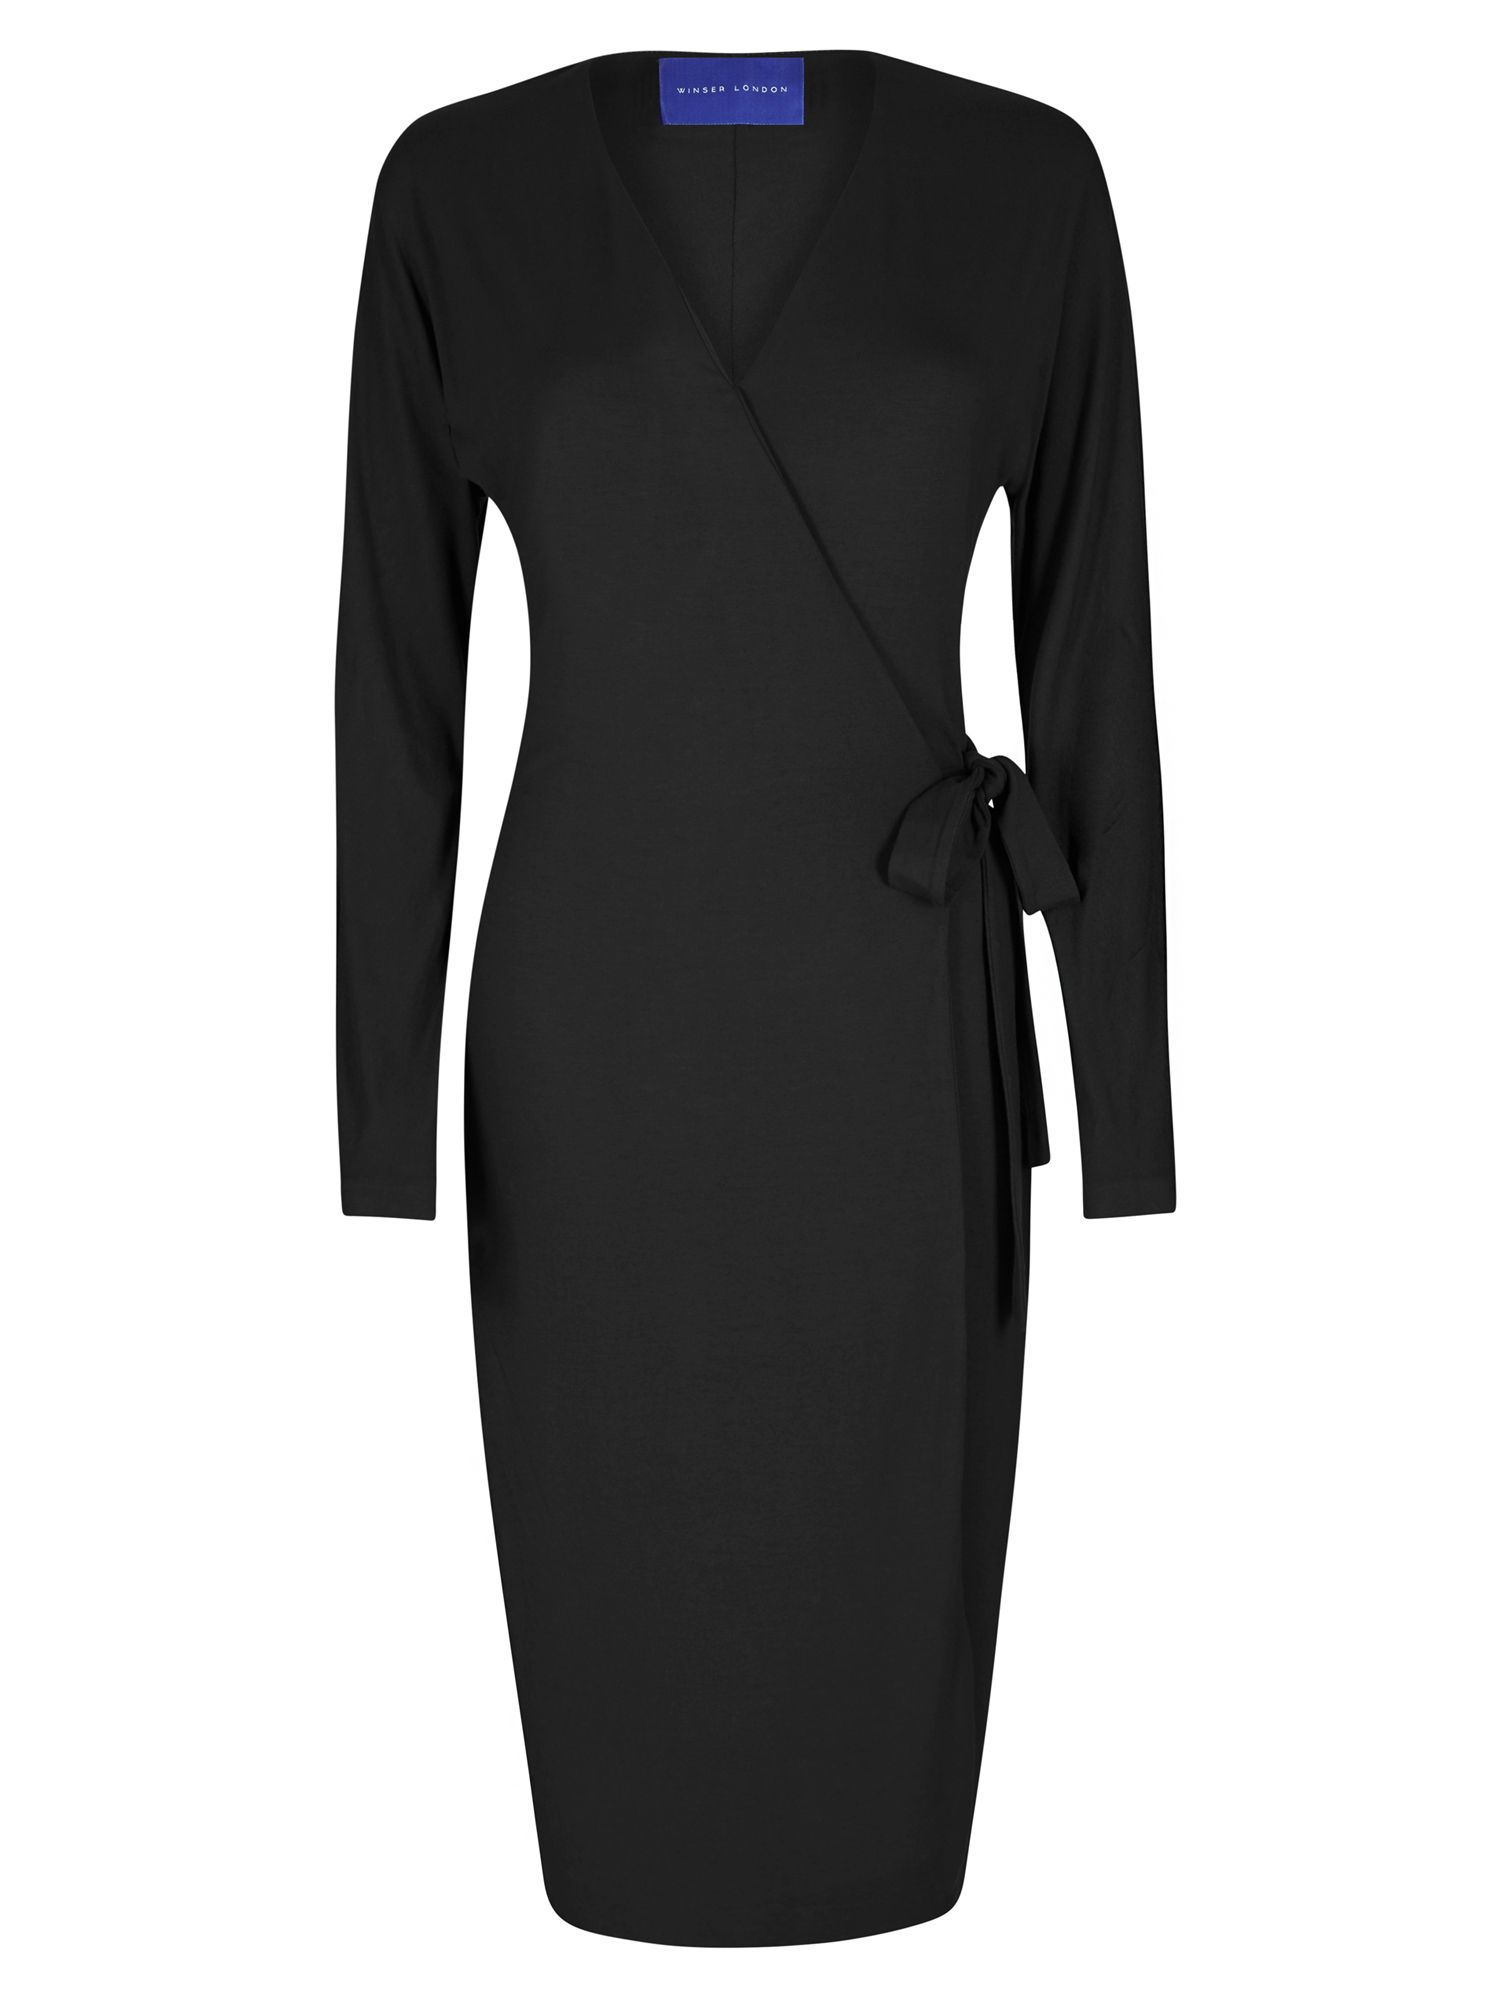 Winser London Wrap Jersey Dress, Black